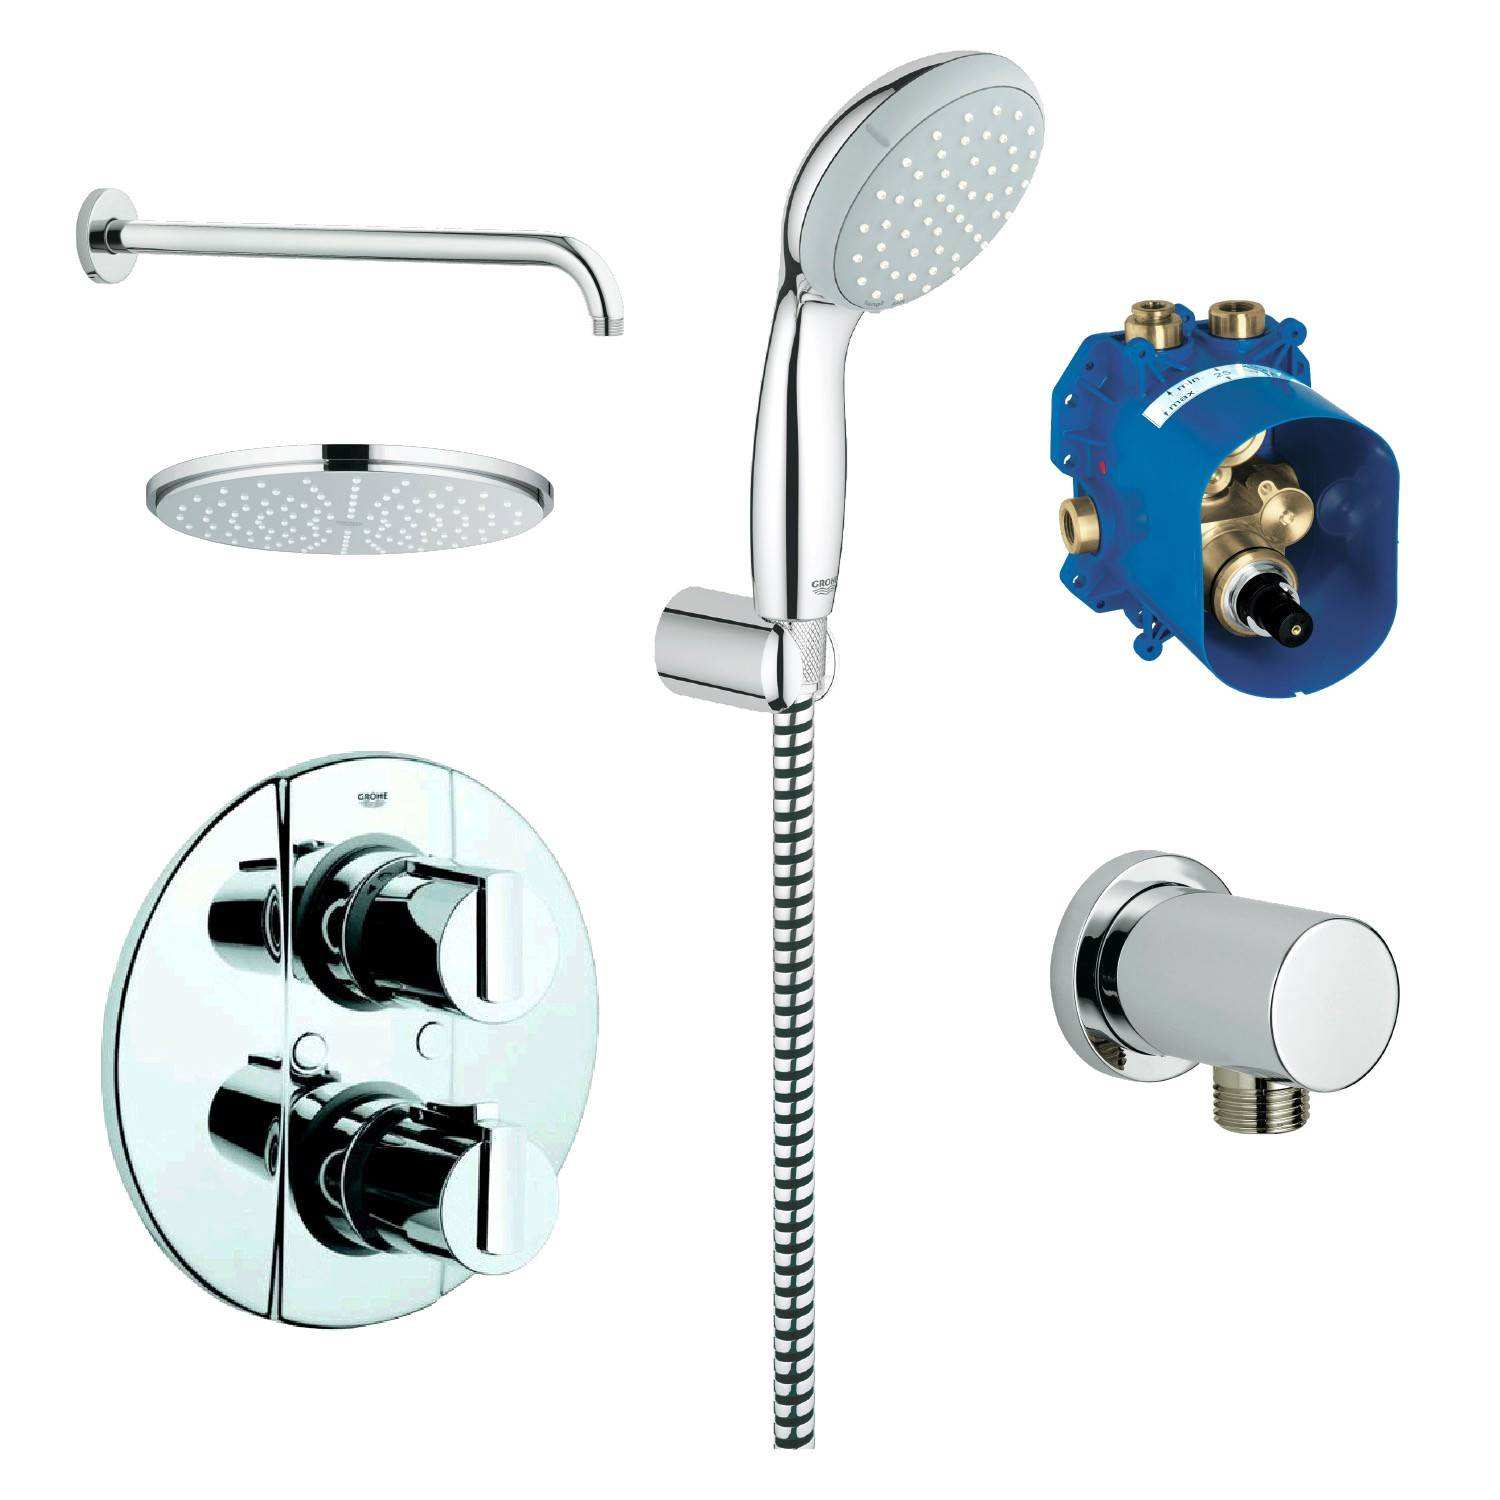 Dusche thermostat Grohe thermostat Dusche Affordable Grohe thermostat